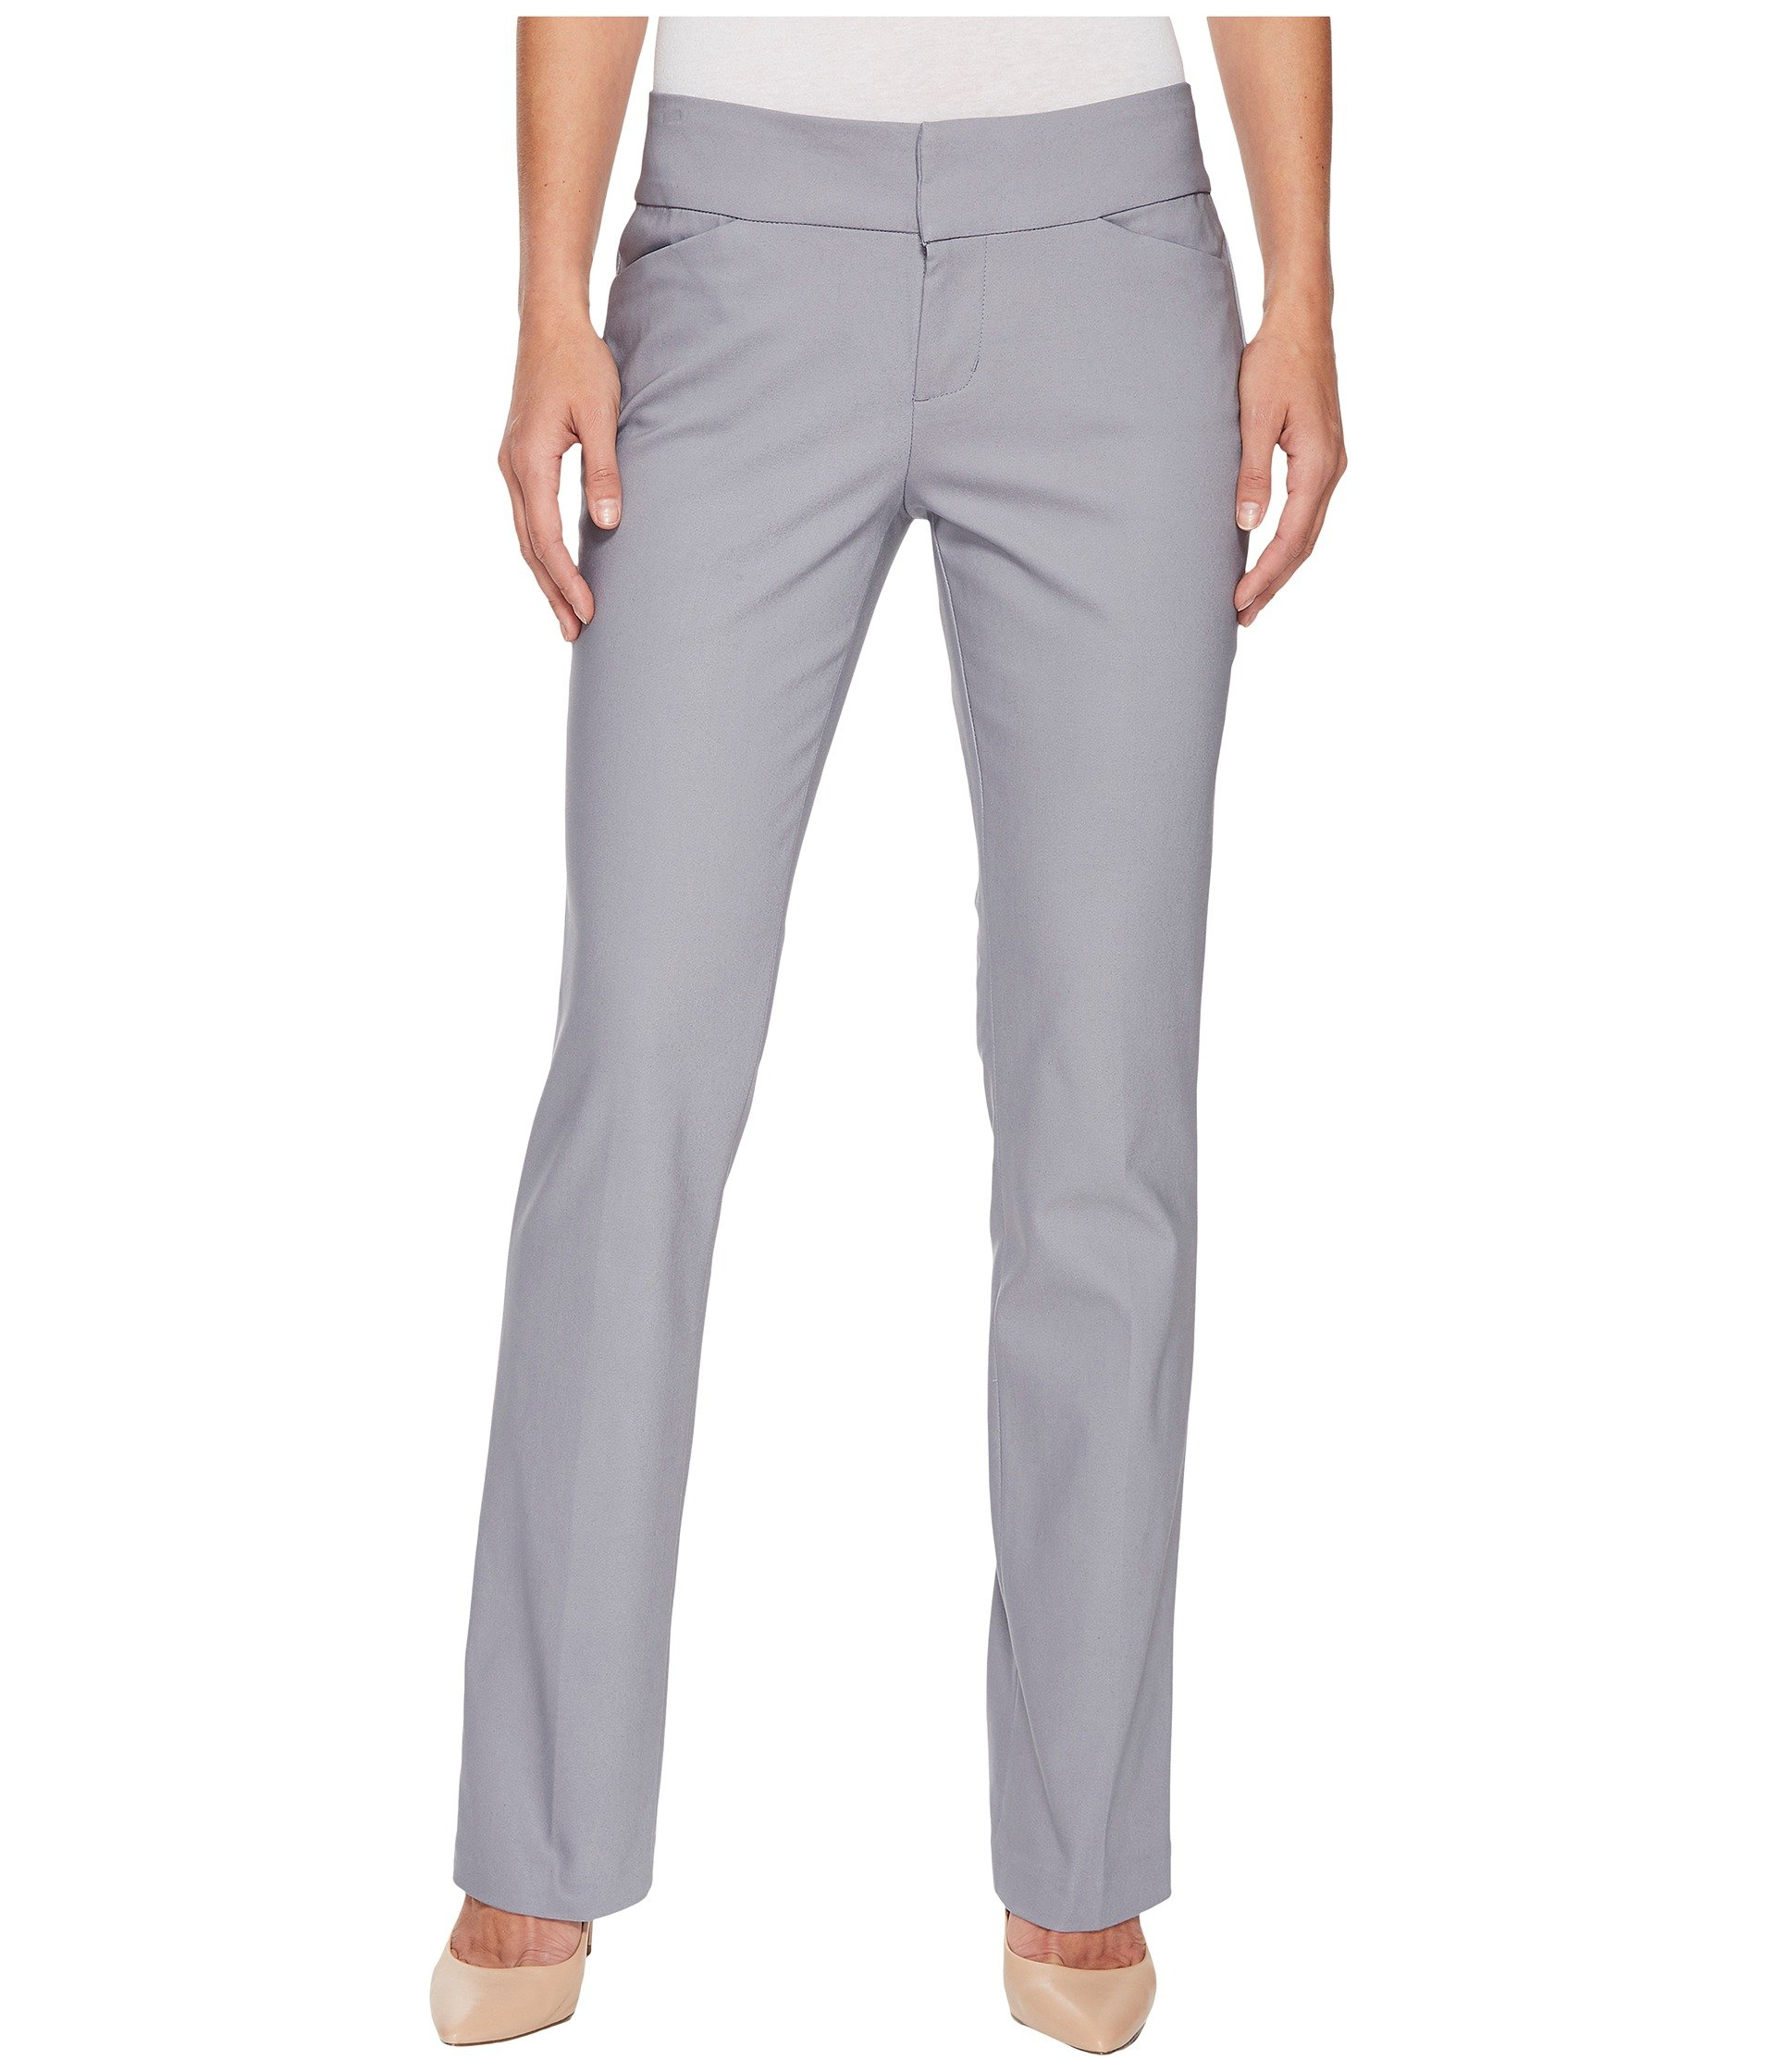 Womens Pant with Zipper Trousers Rich & Royal WSIwwQ3